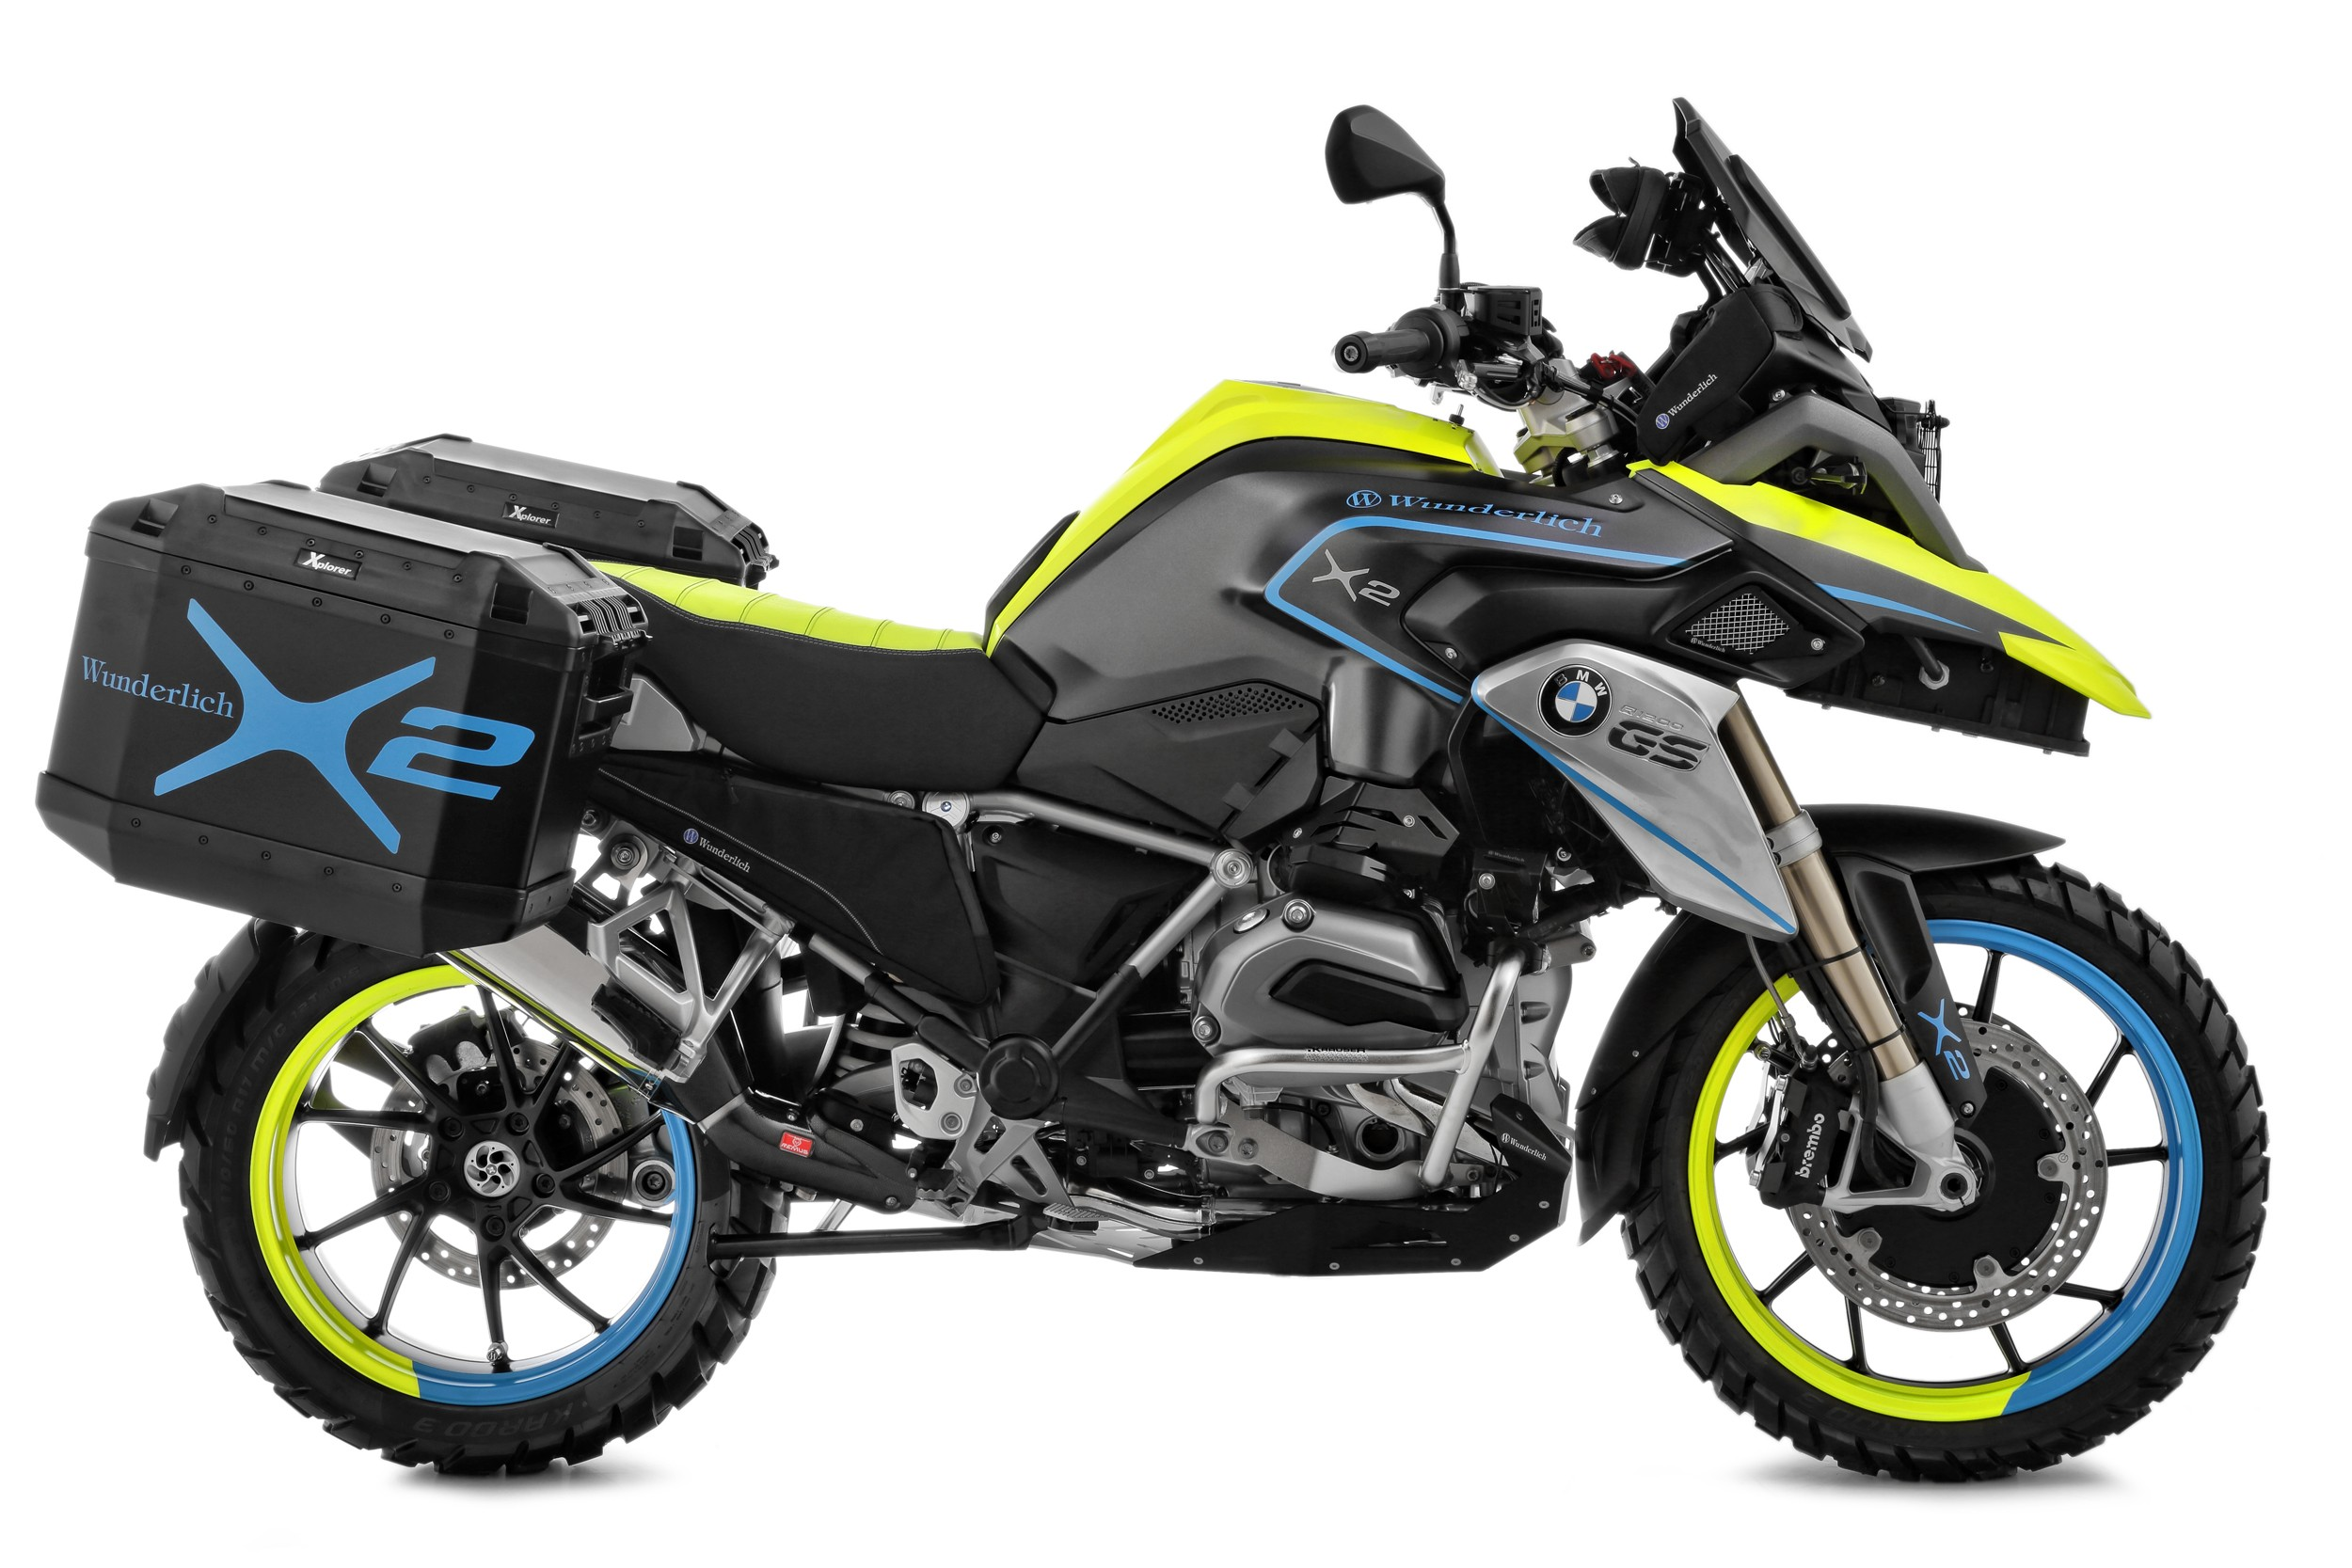 Bmw R1200gs Hybrid 2wd Concept Would Be A Killer Idea